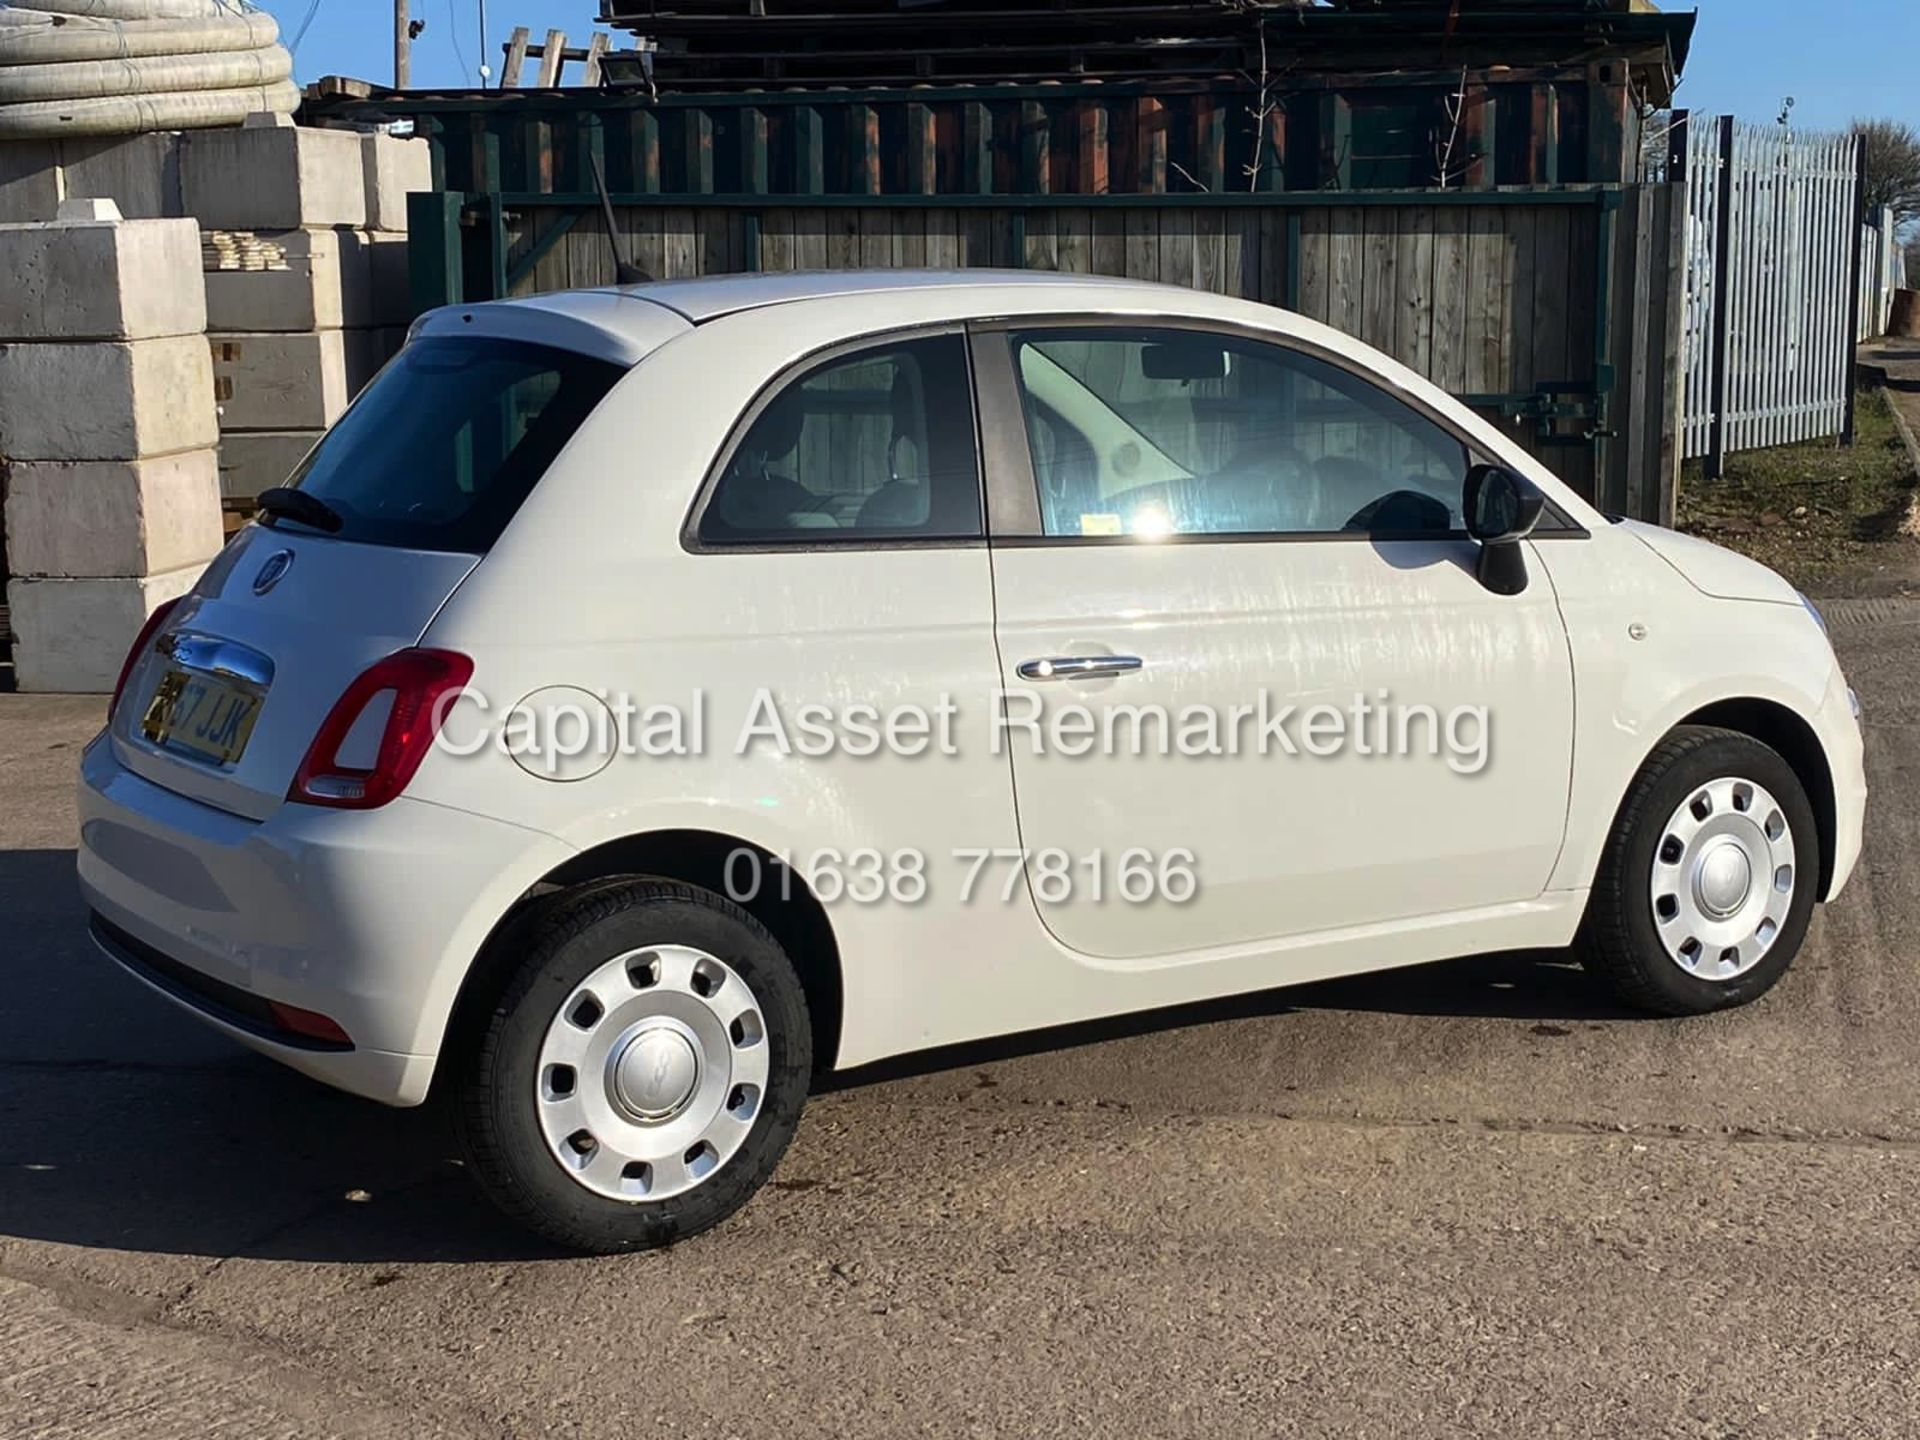 "(On Sale) FIAT 500 ""POP"" 1 OWNER (2018 MODEL) ONLY 30,000 MILES FSH - CRUISE - ELEC PACK - Image 8 of 23"